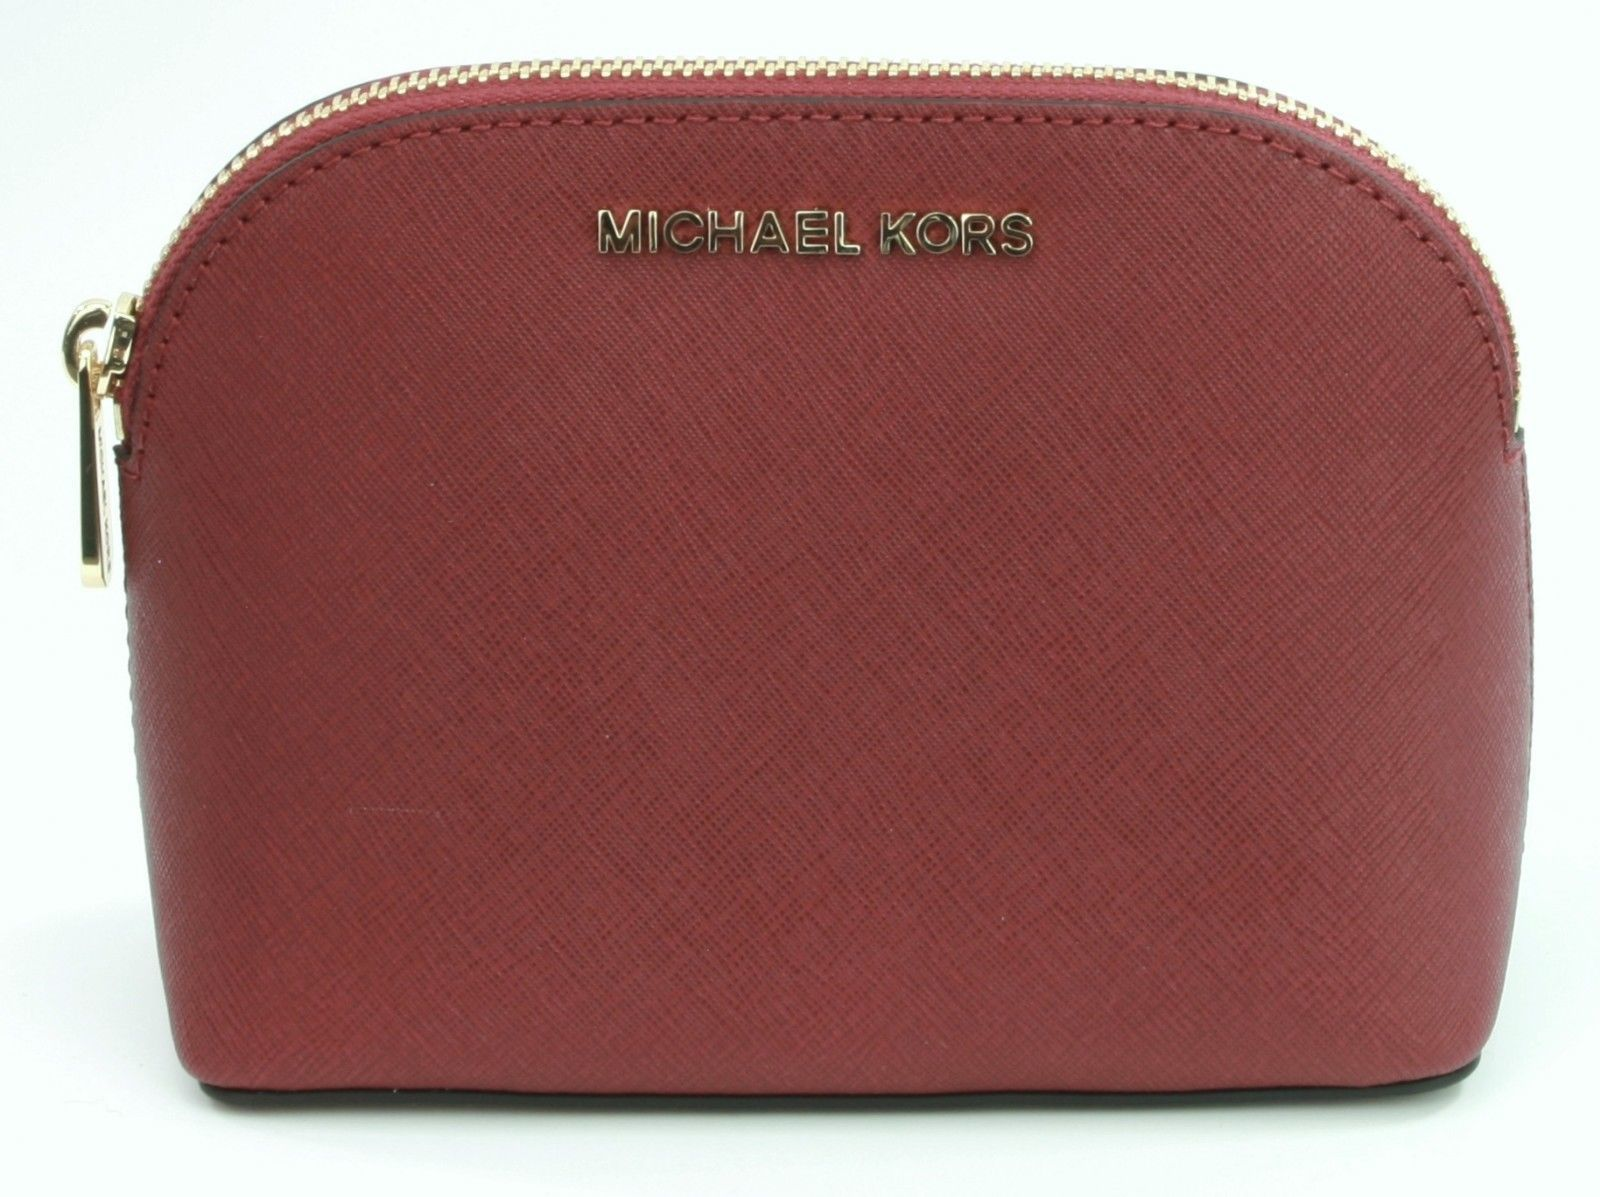 Michael Kors Emmy Make Up Bag Case Cherry and 50 similar items